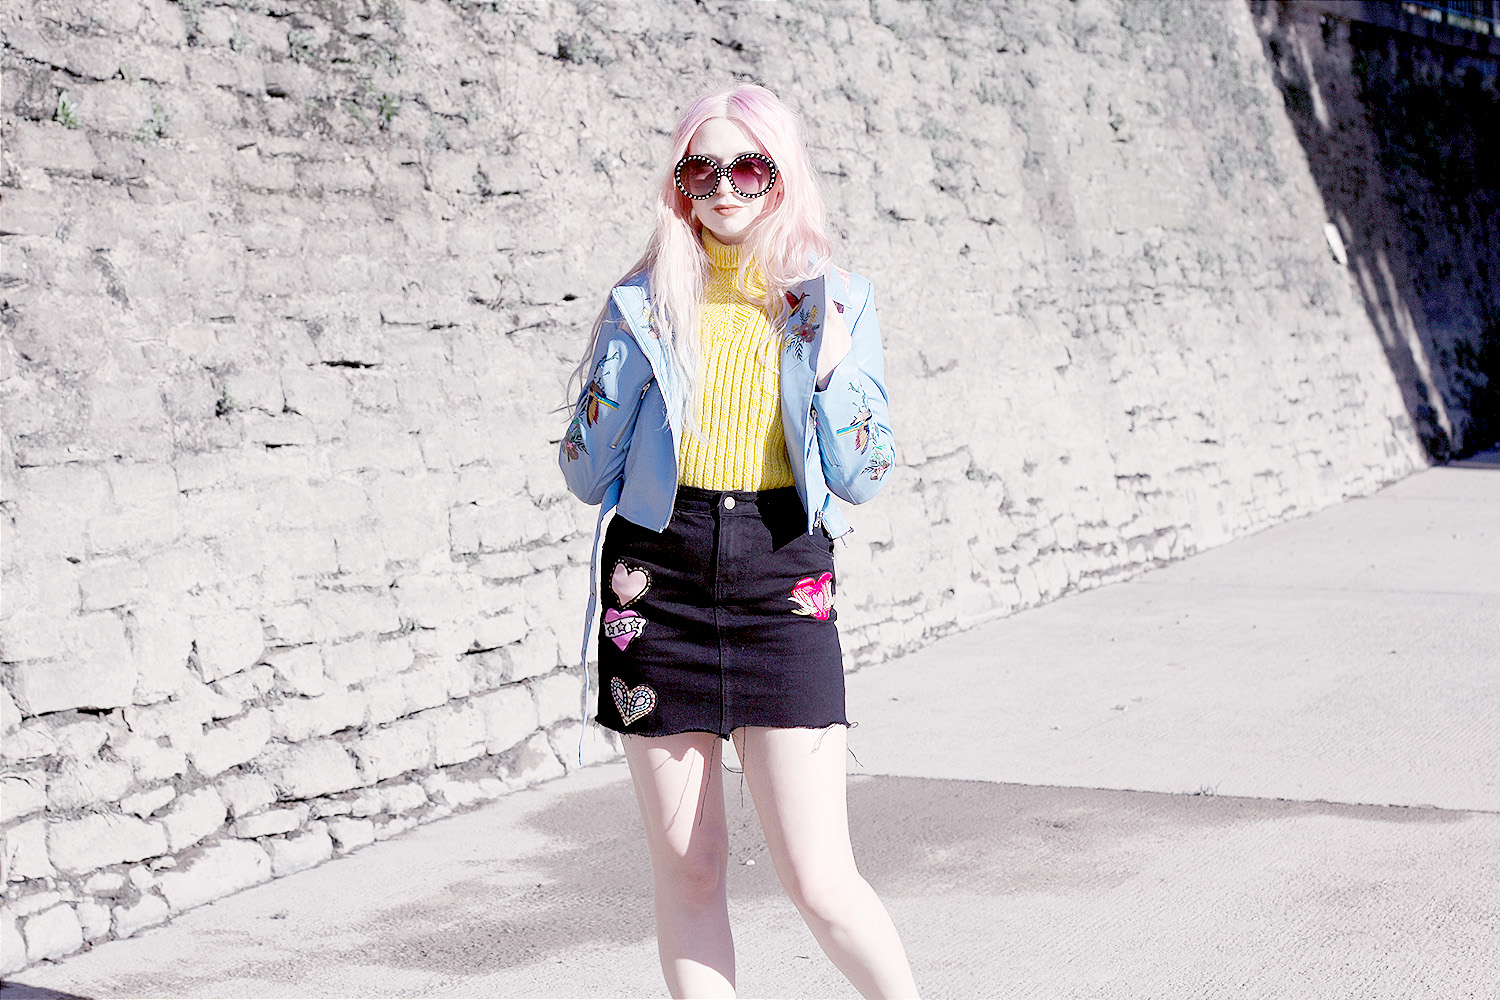 Embroidered Jacket, Embroidered Leather, unif yellow jumper, Denim Patch Skirt, Black Denim Skirt, Glamorous Skirt, Blue Leather Jacket, embroidered trainers